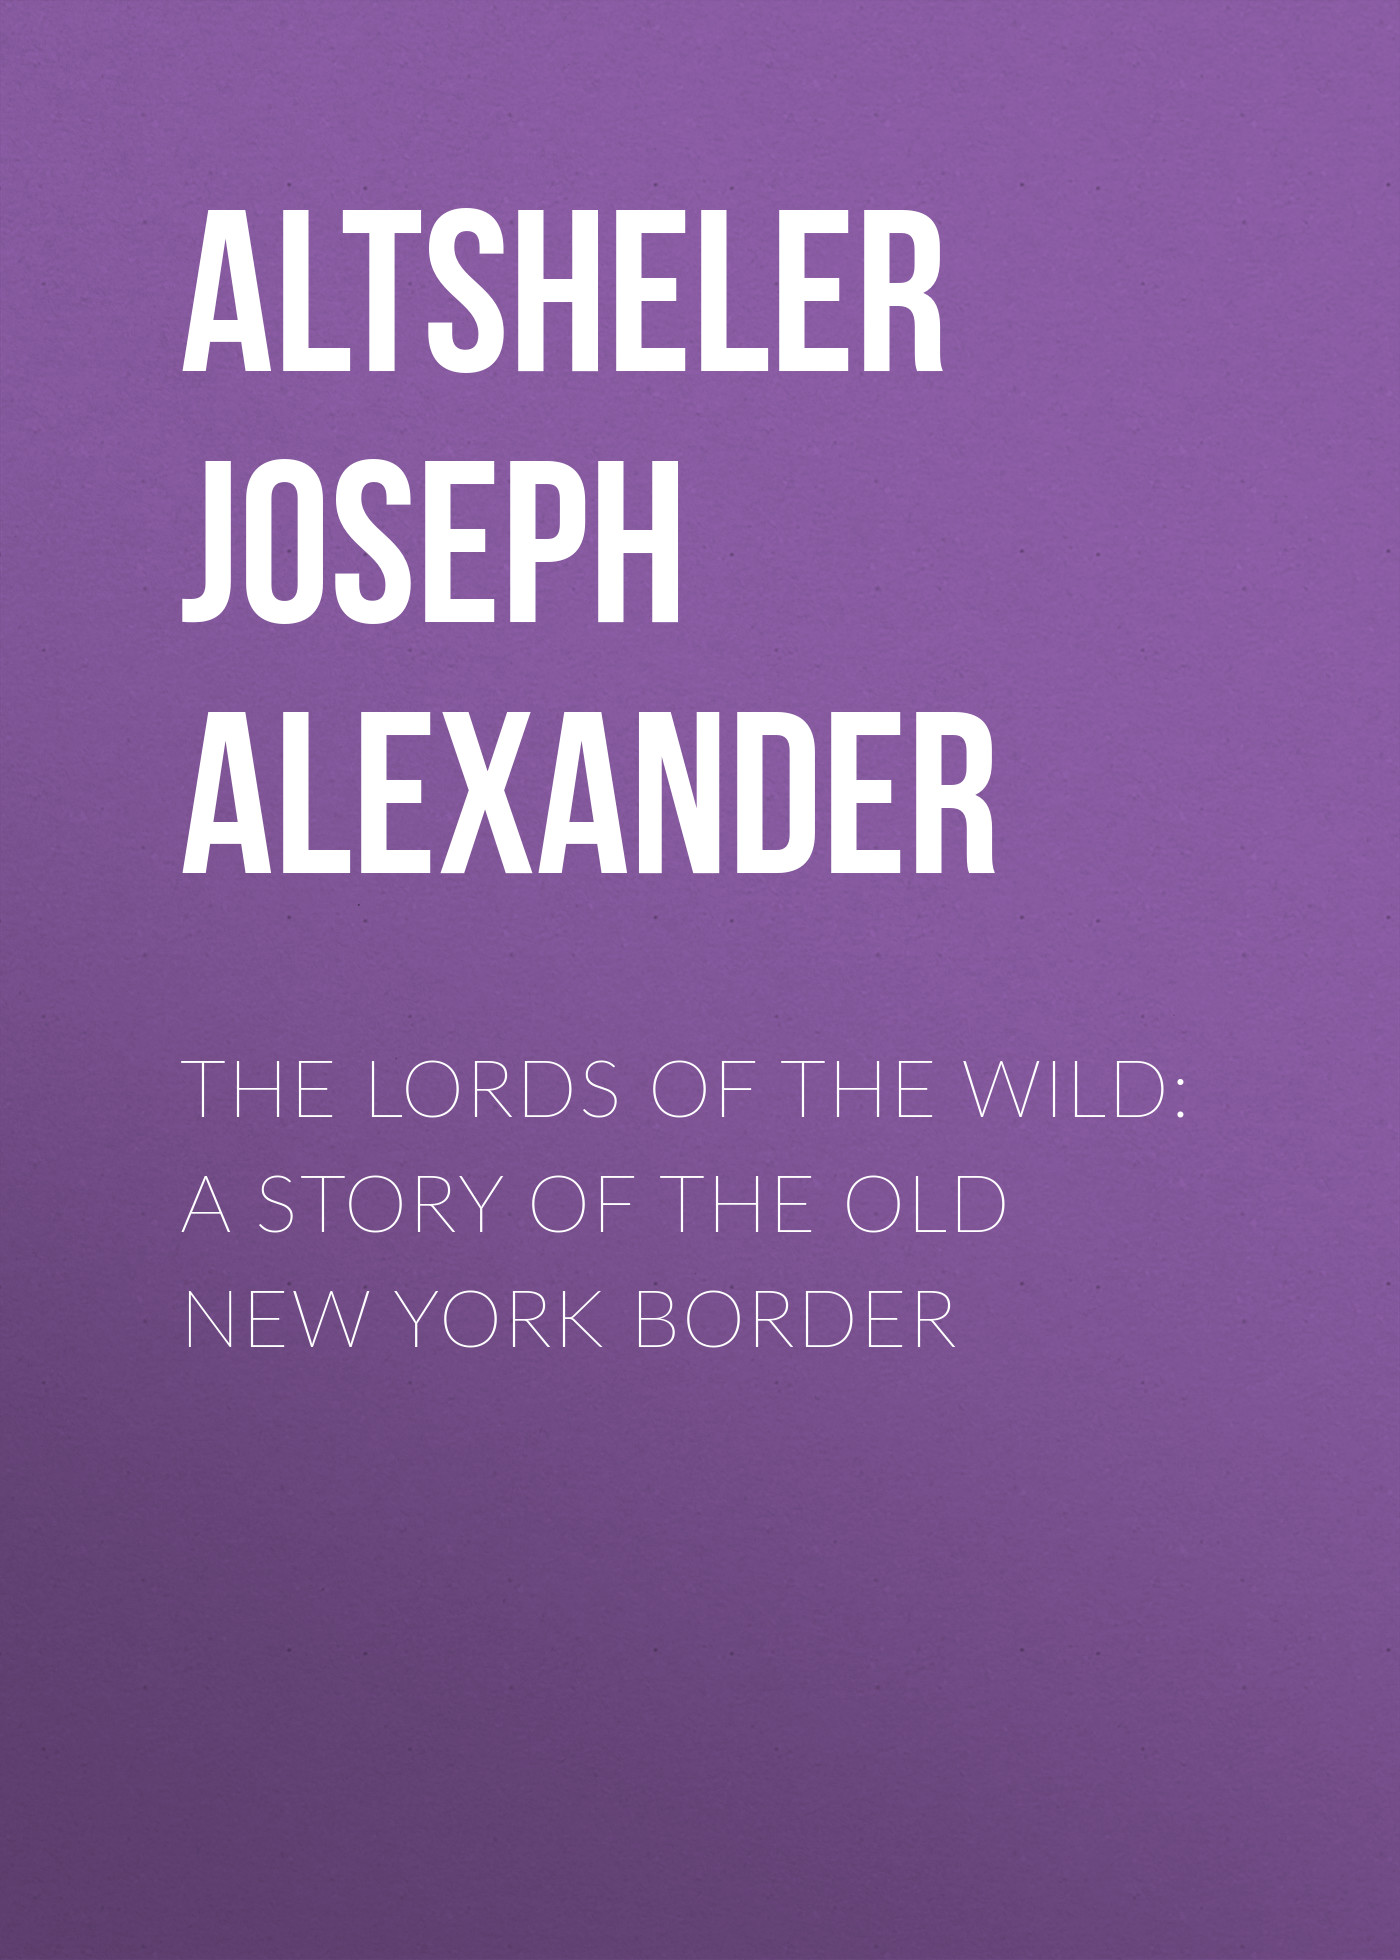 Altsheler Joseph Alexander The Lords of the Wild: A Story of the Old New York Border